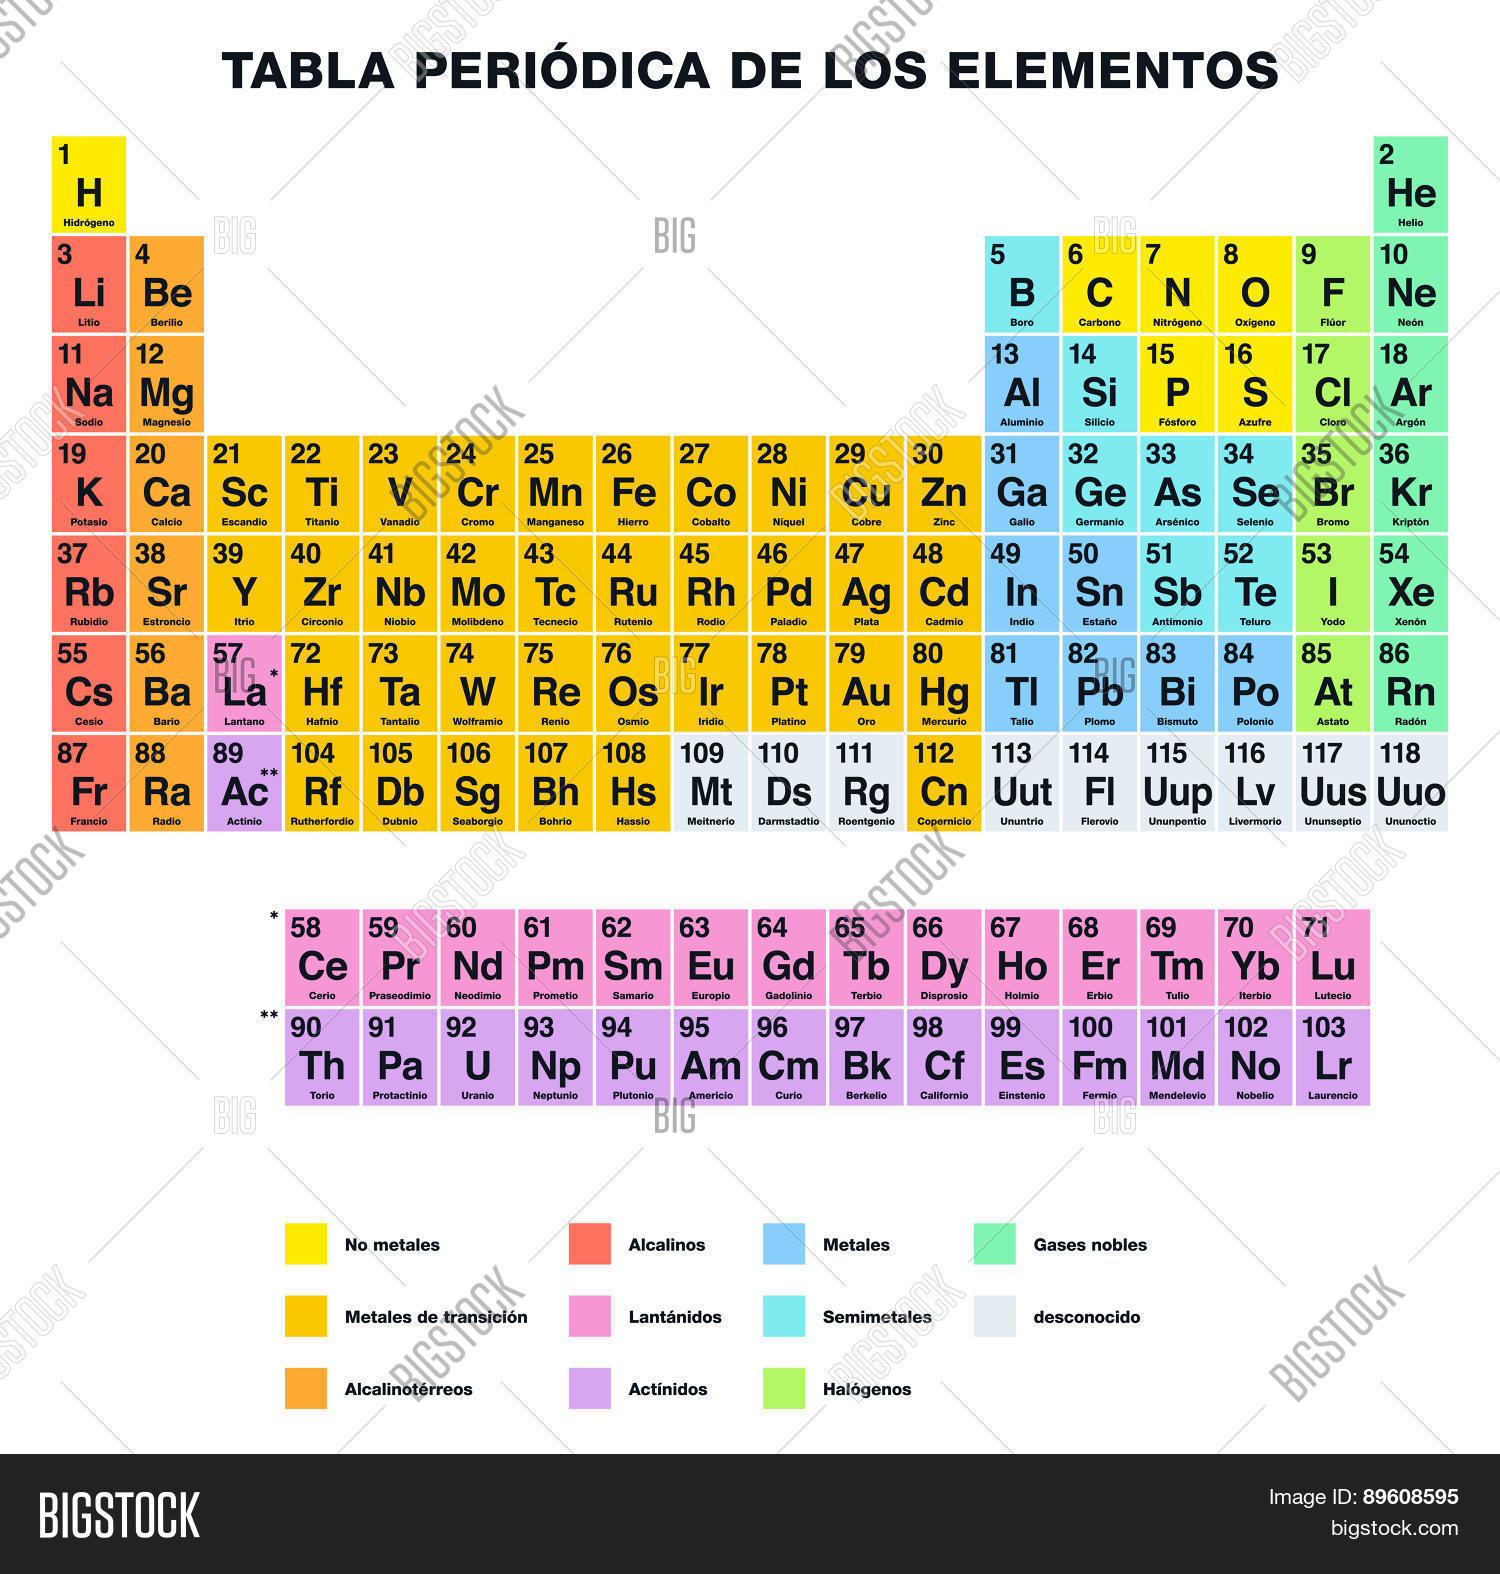 Periodic table vector photo free trial bigstock periodic table of the elements spanish labeling urtaz Images